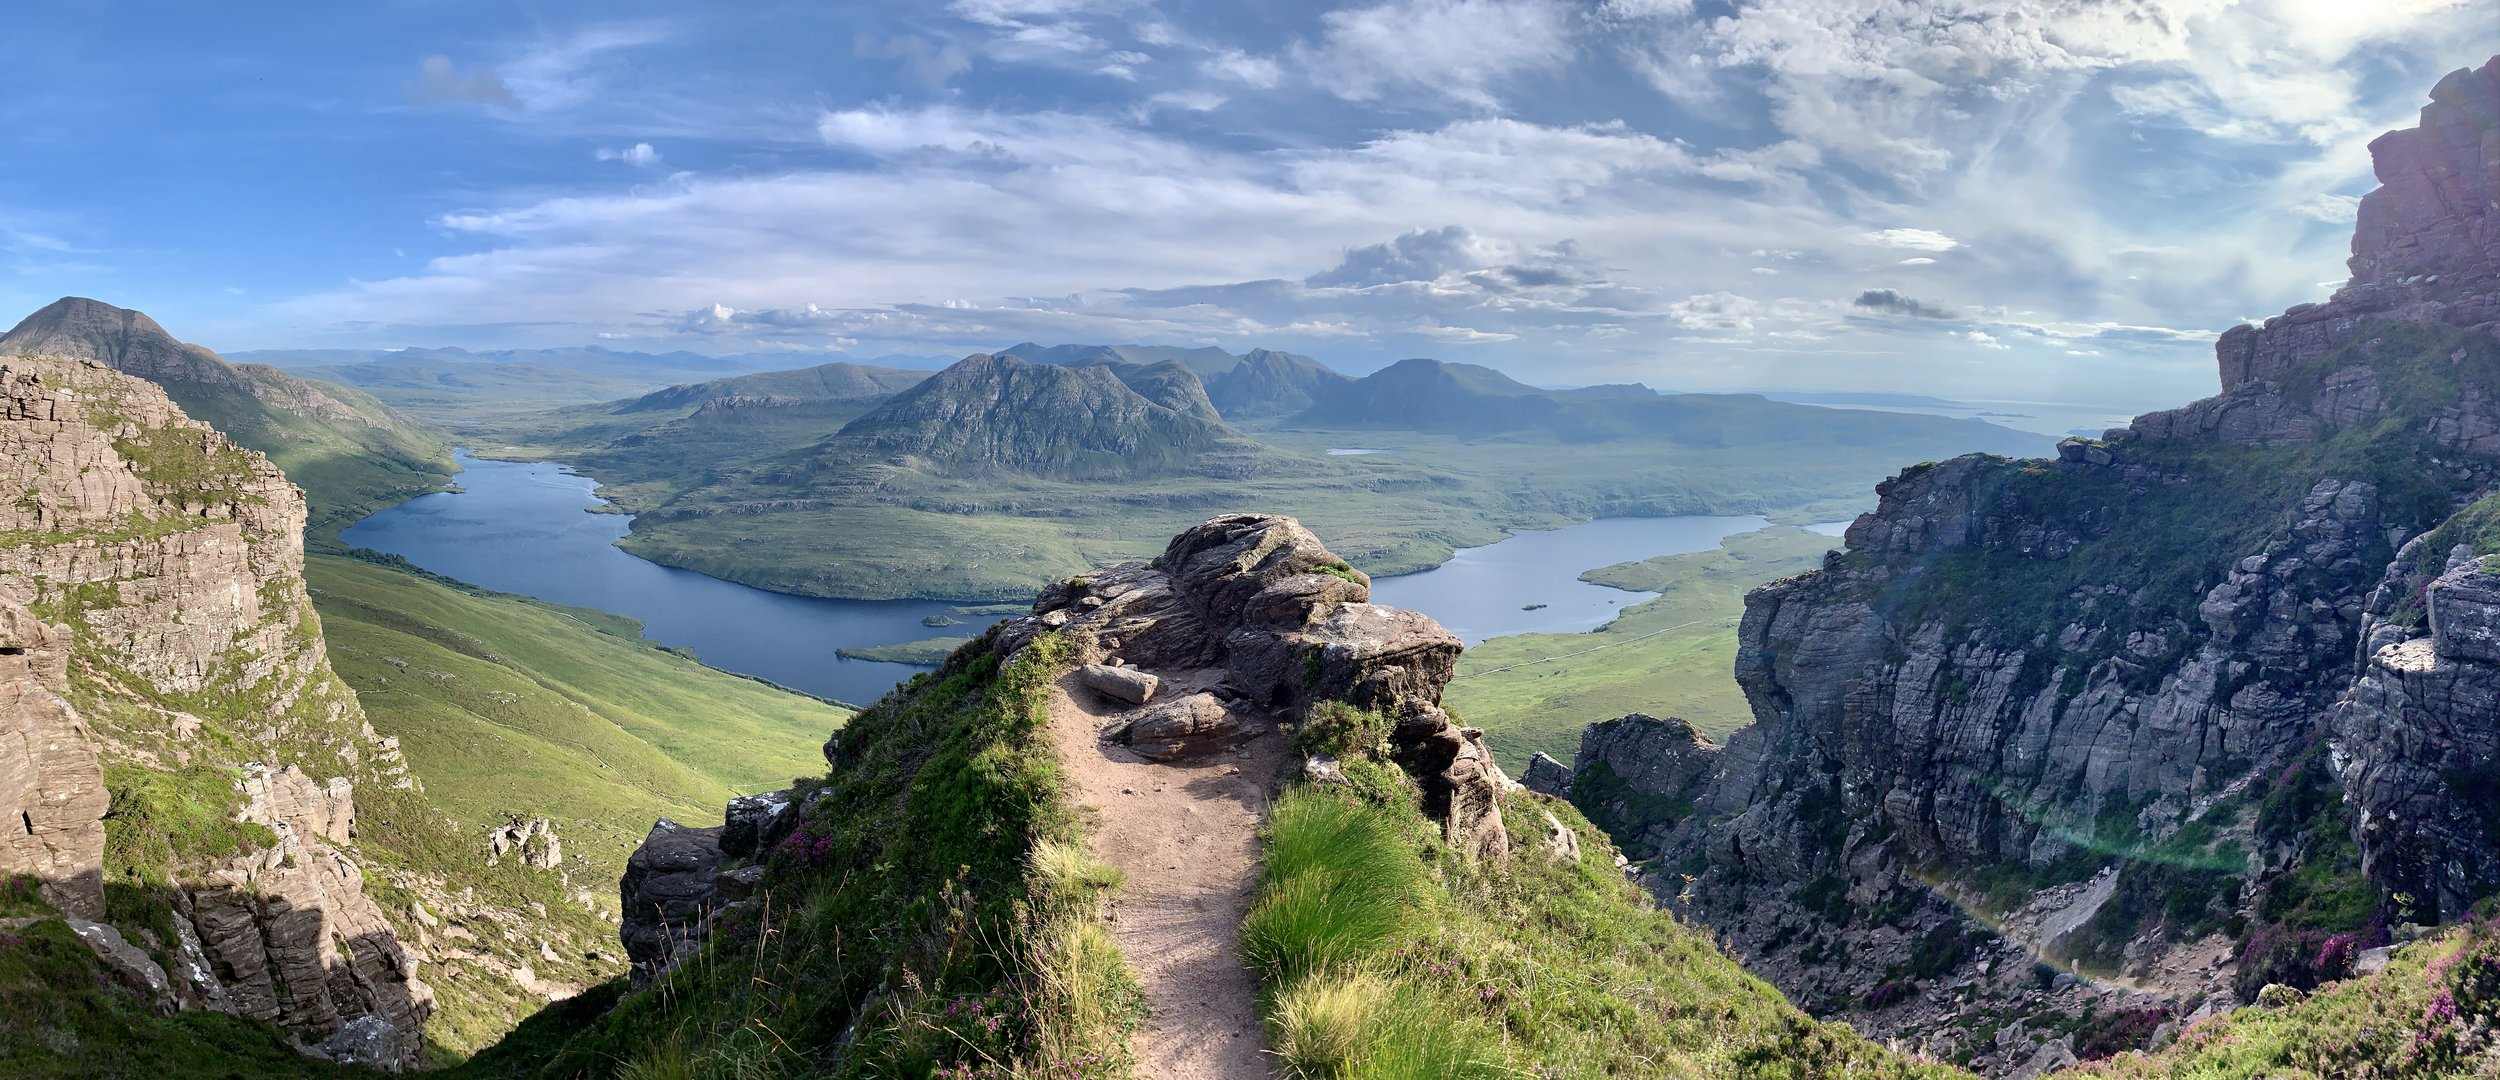 Image - Looking South from Stac Pollaidh ©Paul J Howell